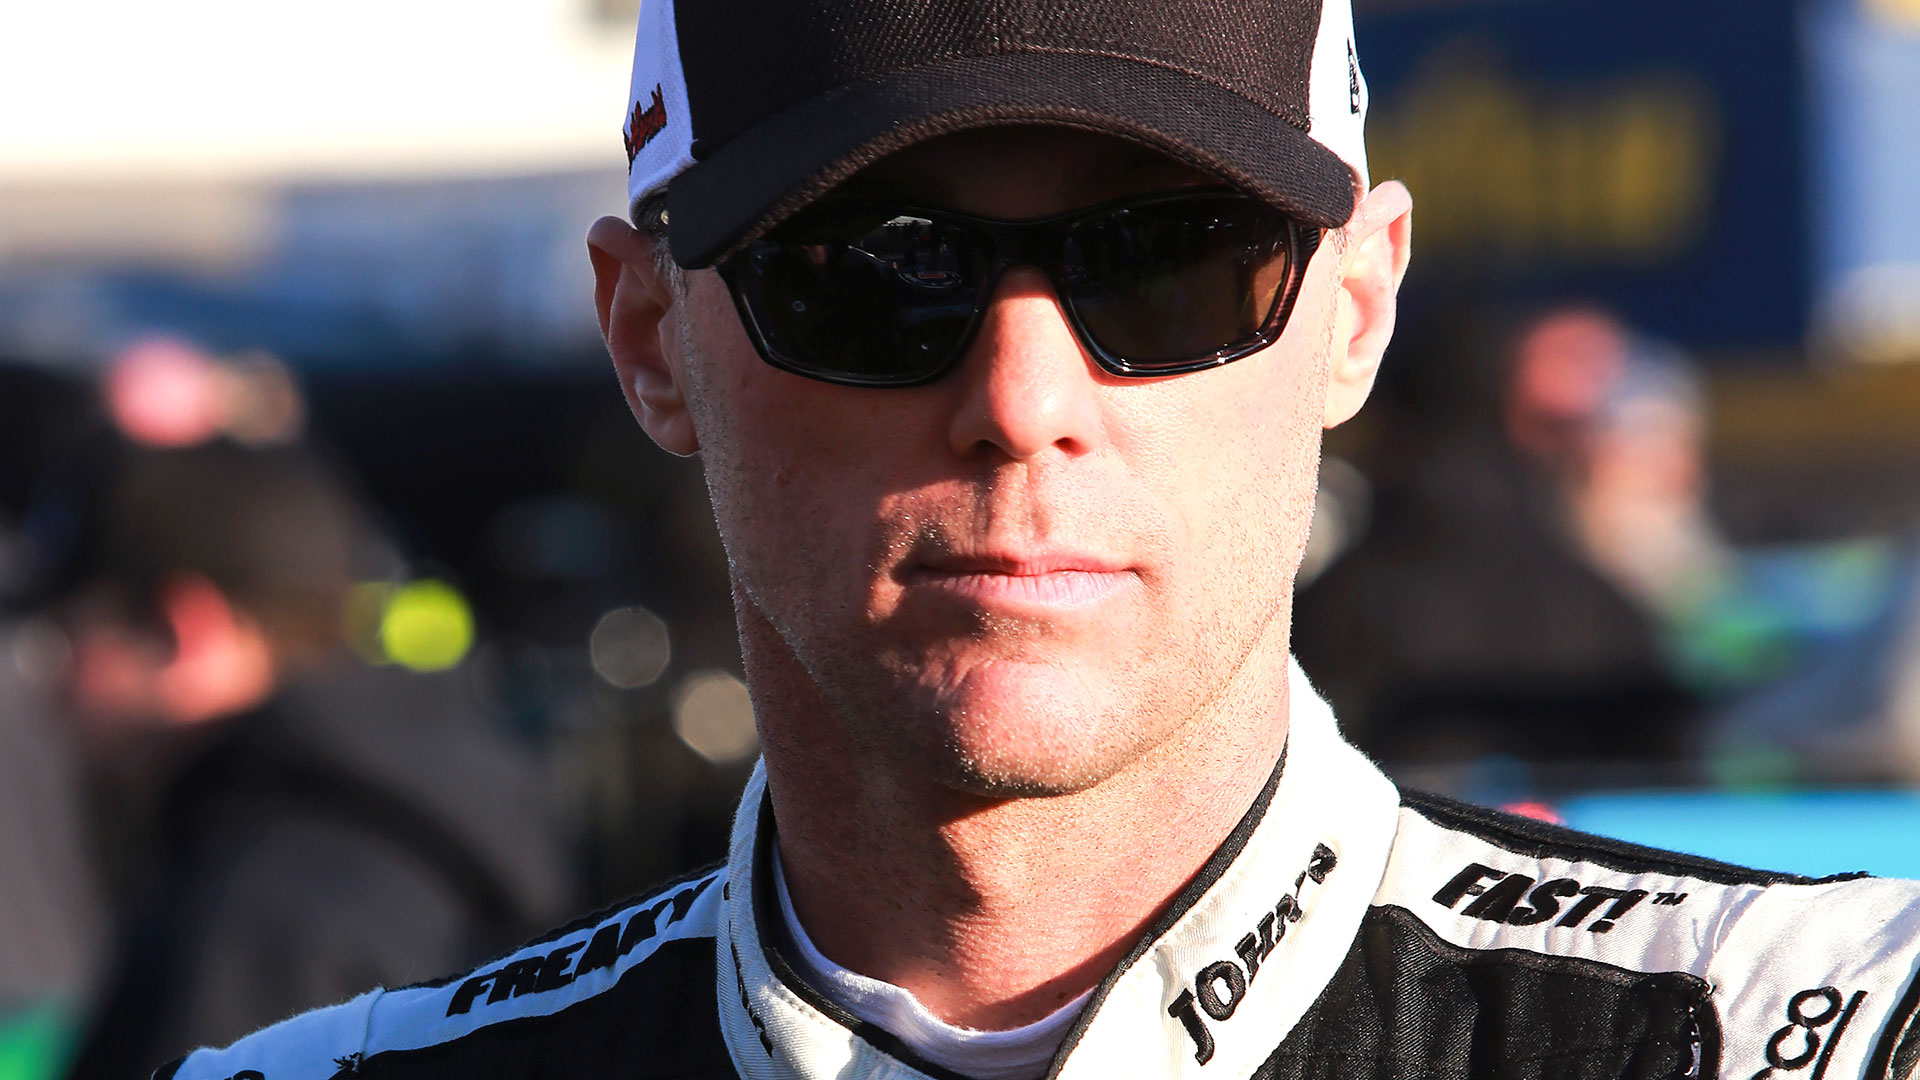 NASCAR odds and driver ratings – Gap closes on Harvick ahead of Texas